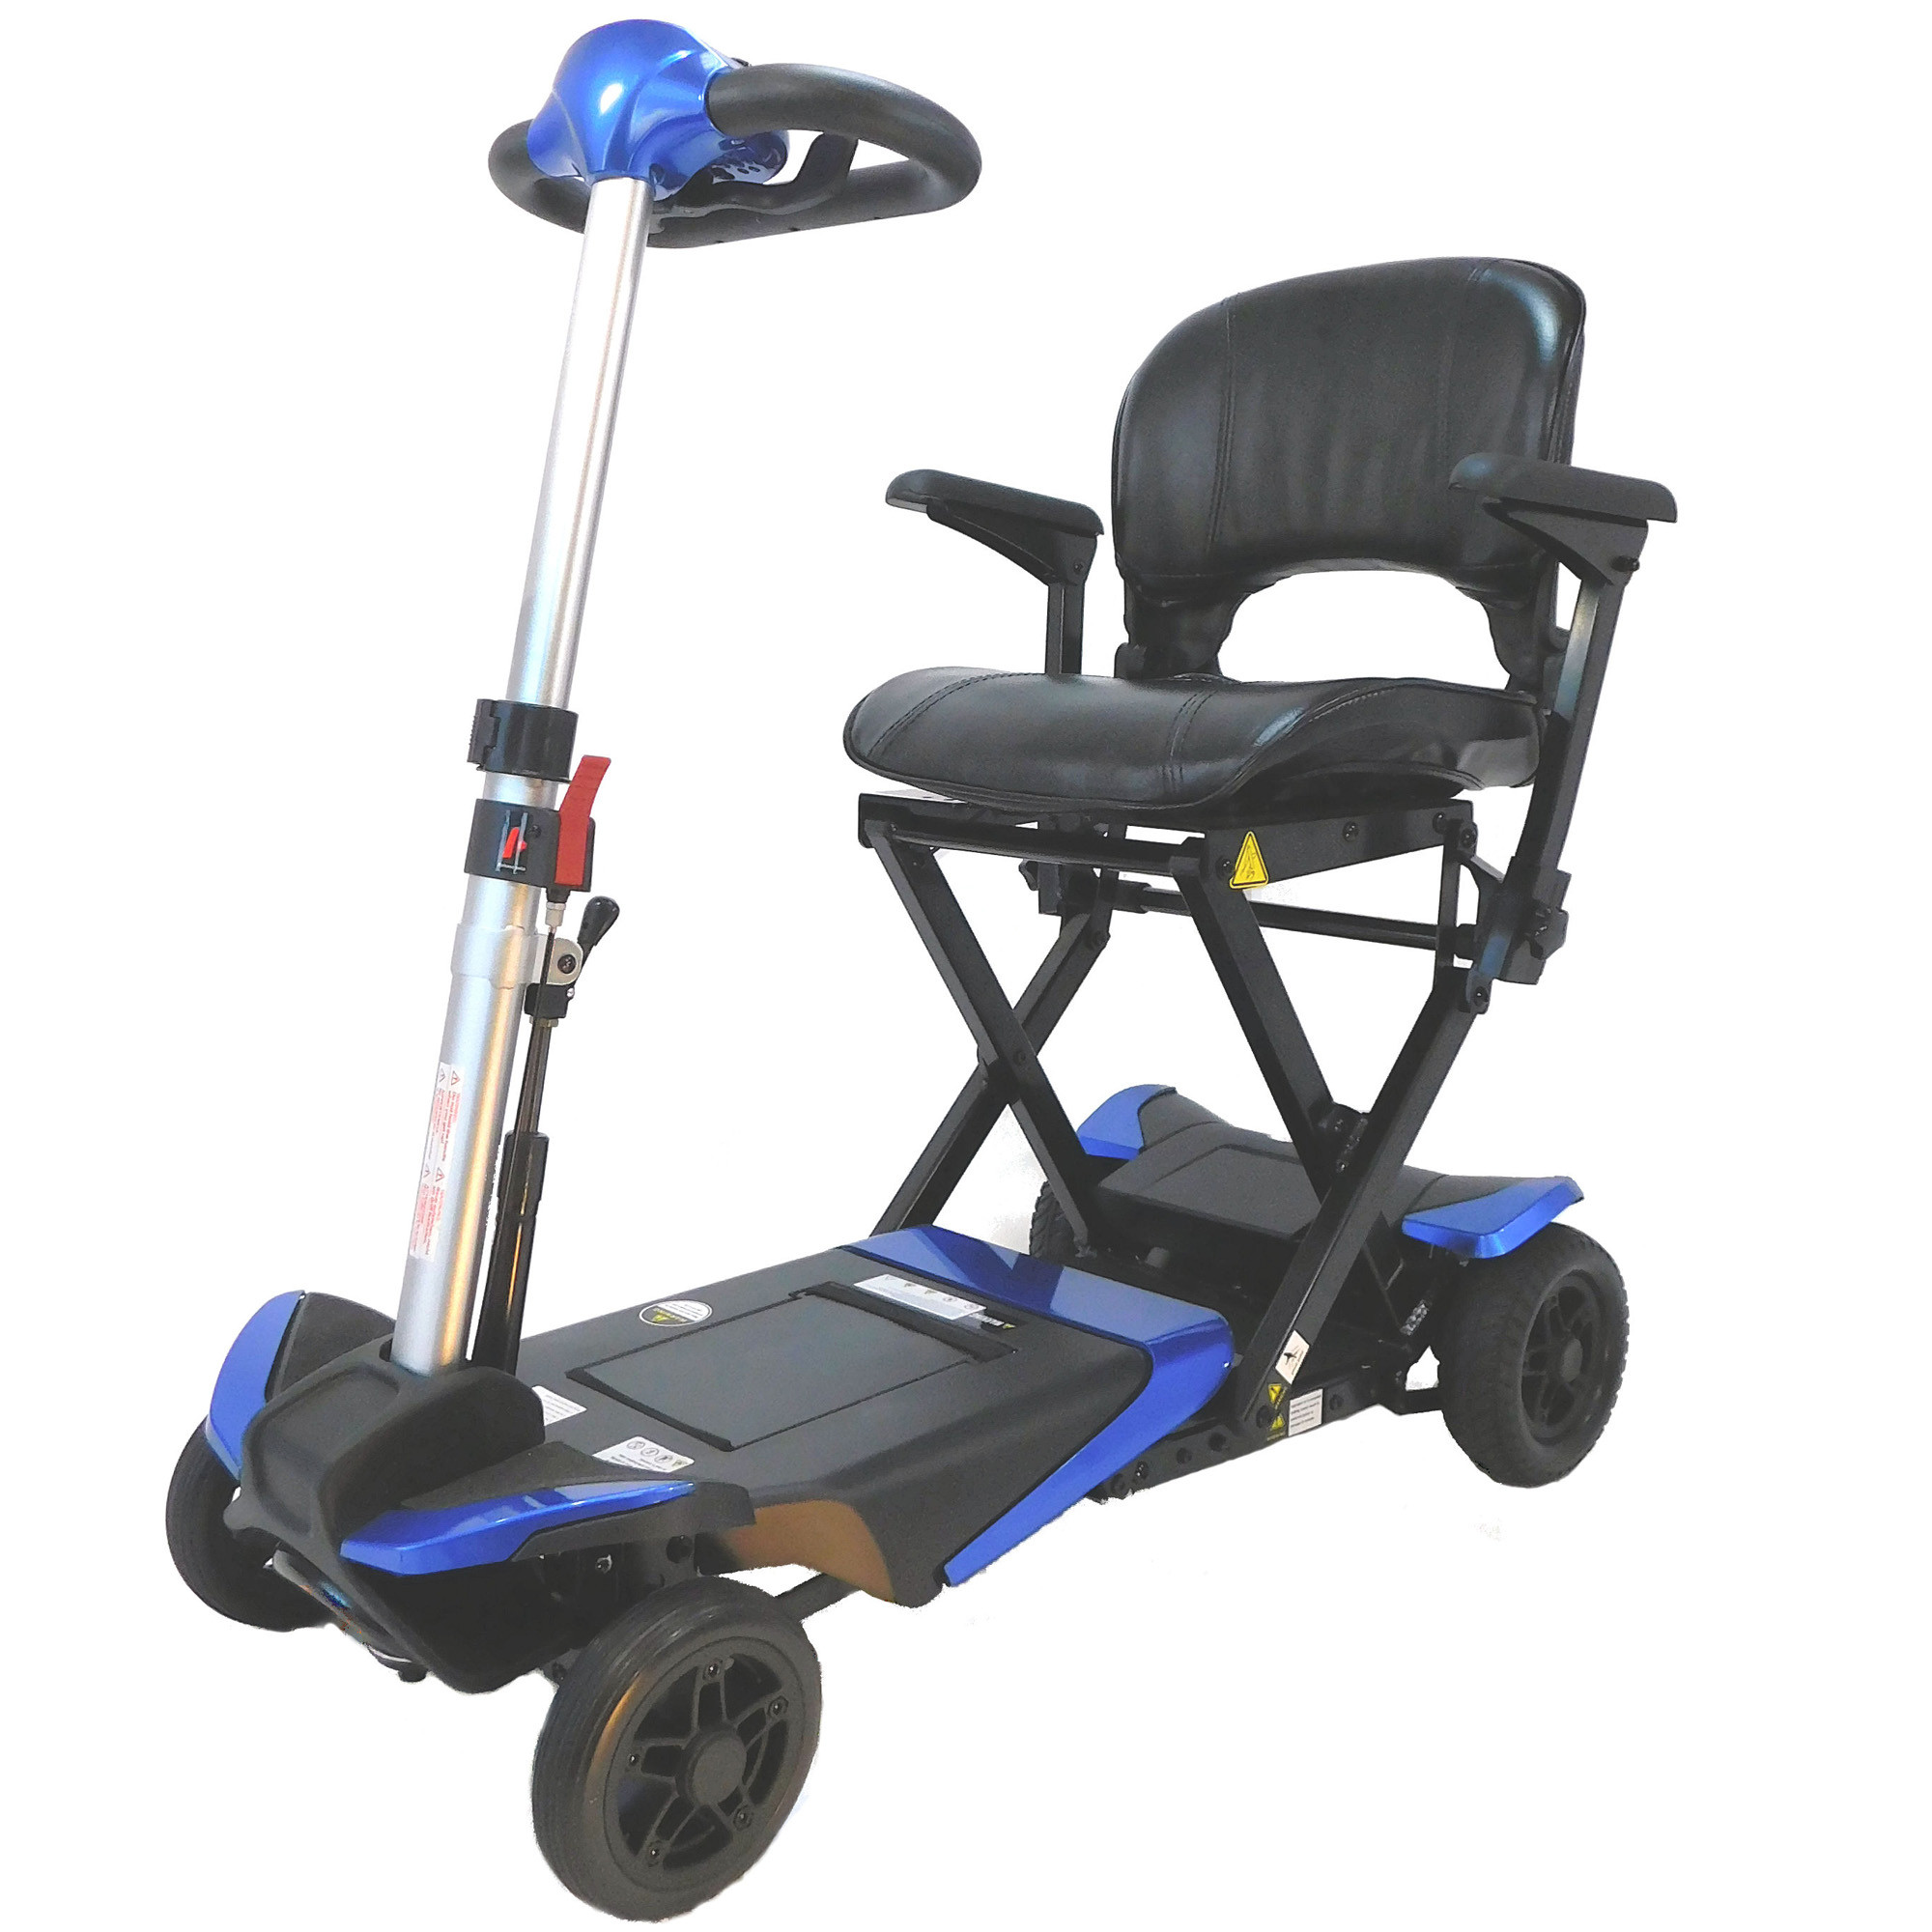 Difference Between A Mobility Scooter And A Wheelchair